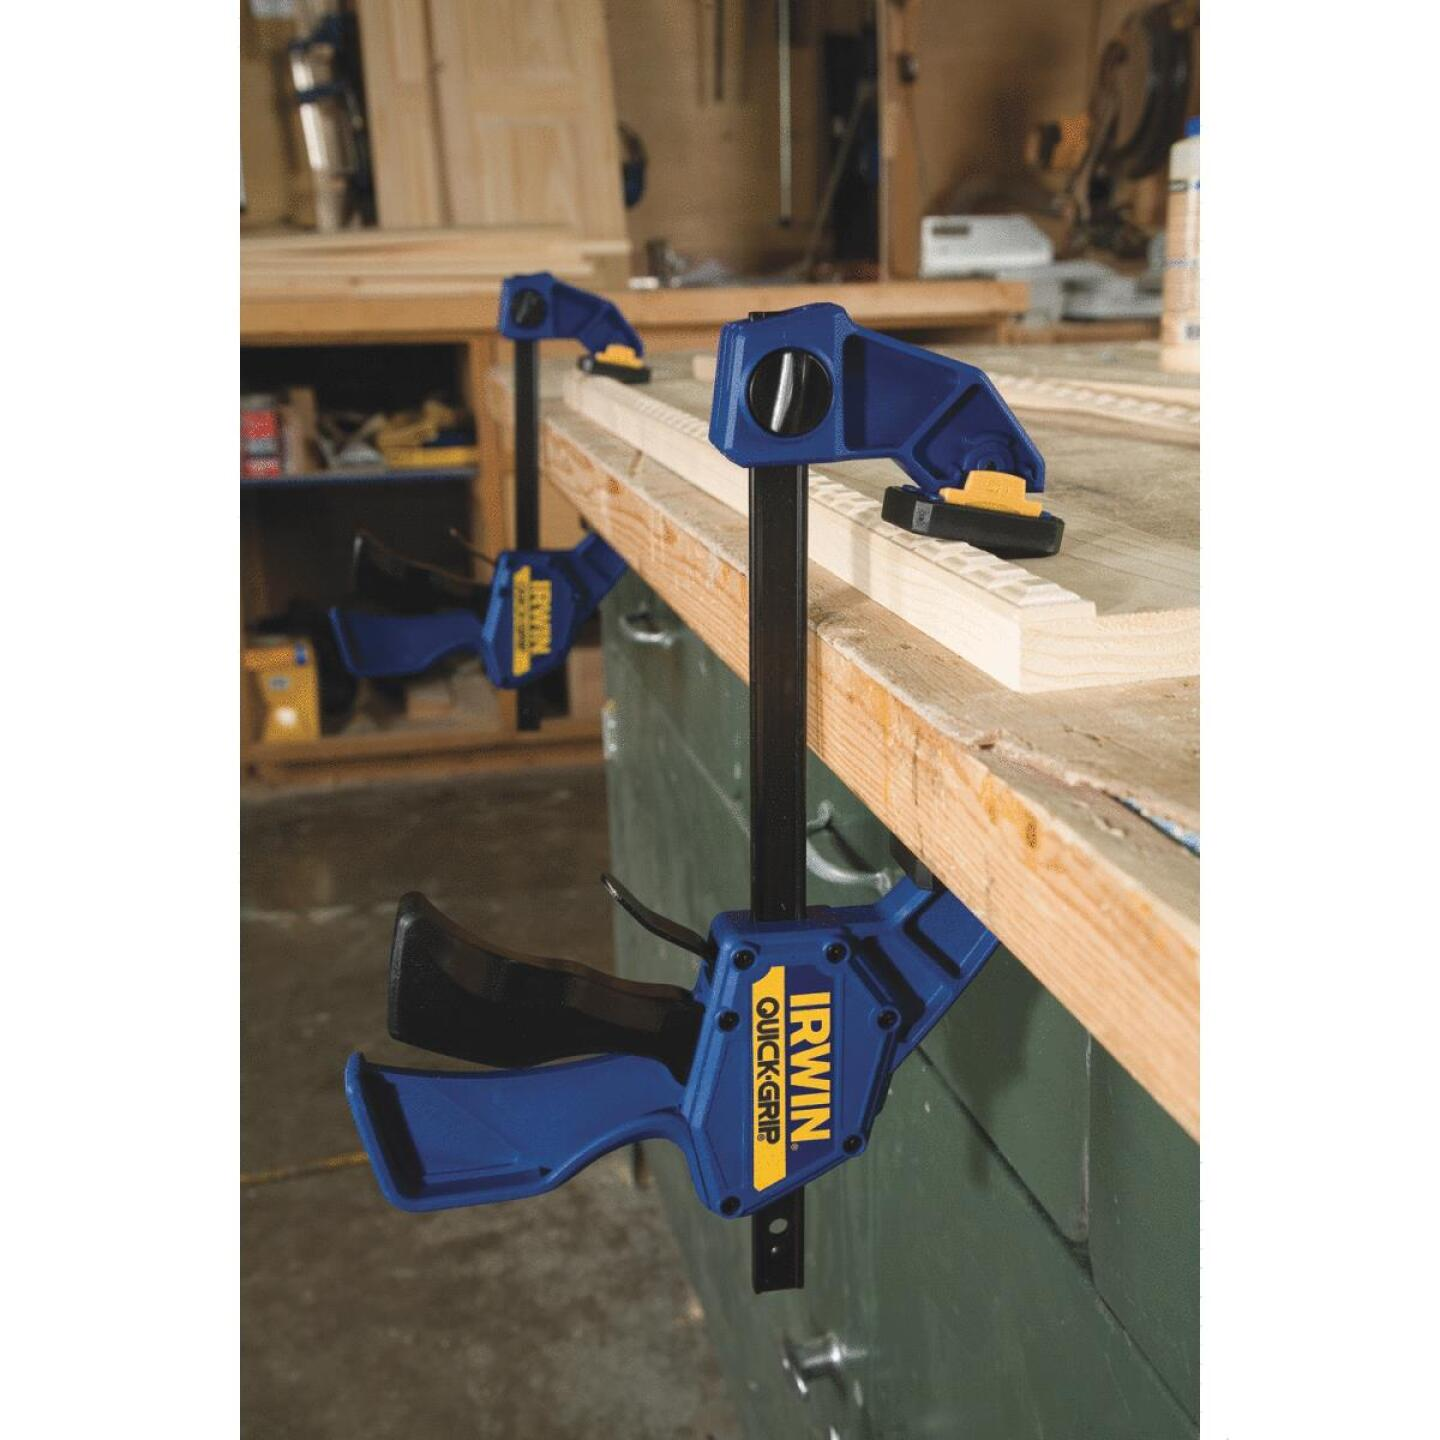 Irwin Quick-Grip 12 In. x 3-1/4 In. One-Hand Bar Clamp Image 14